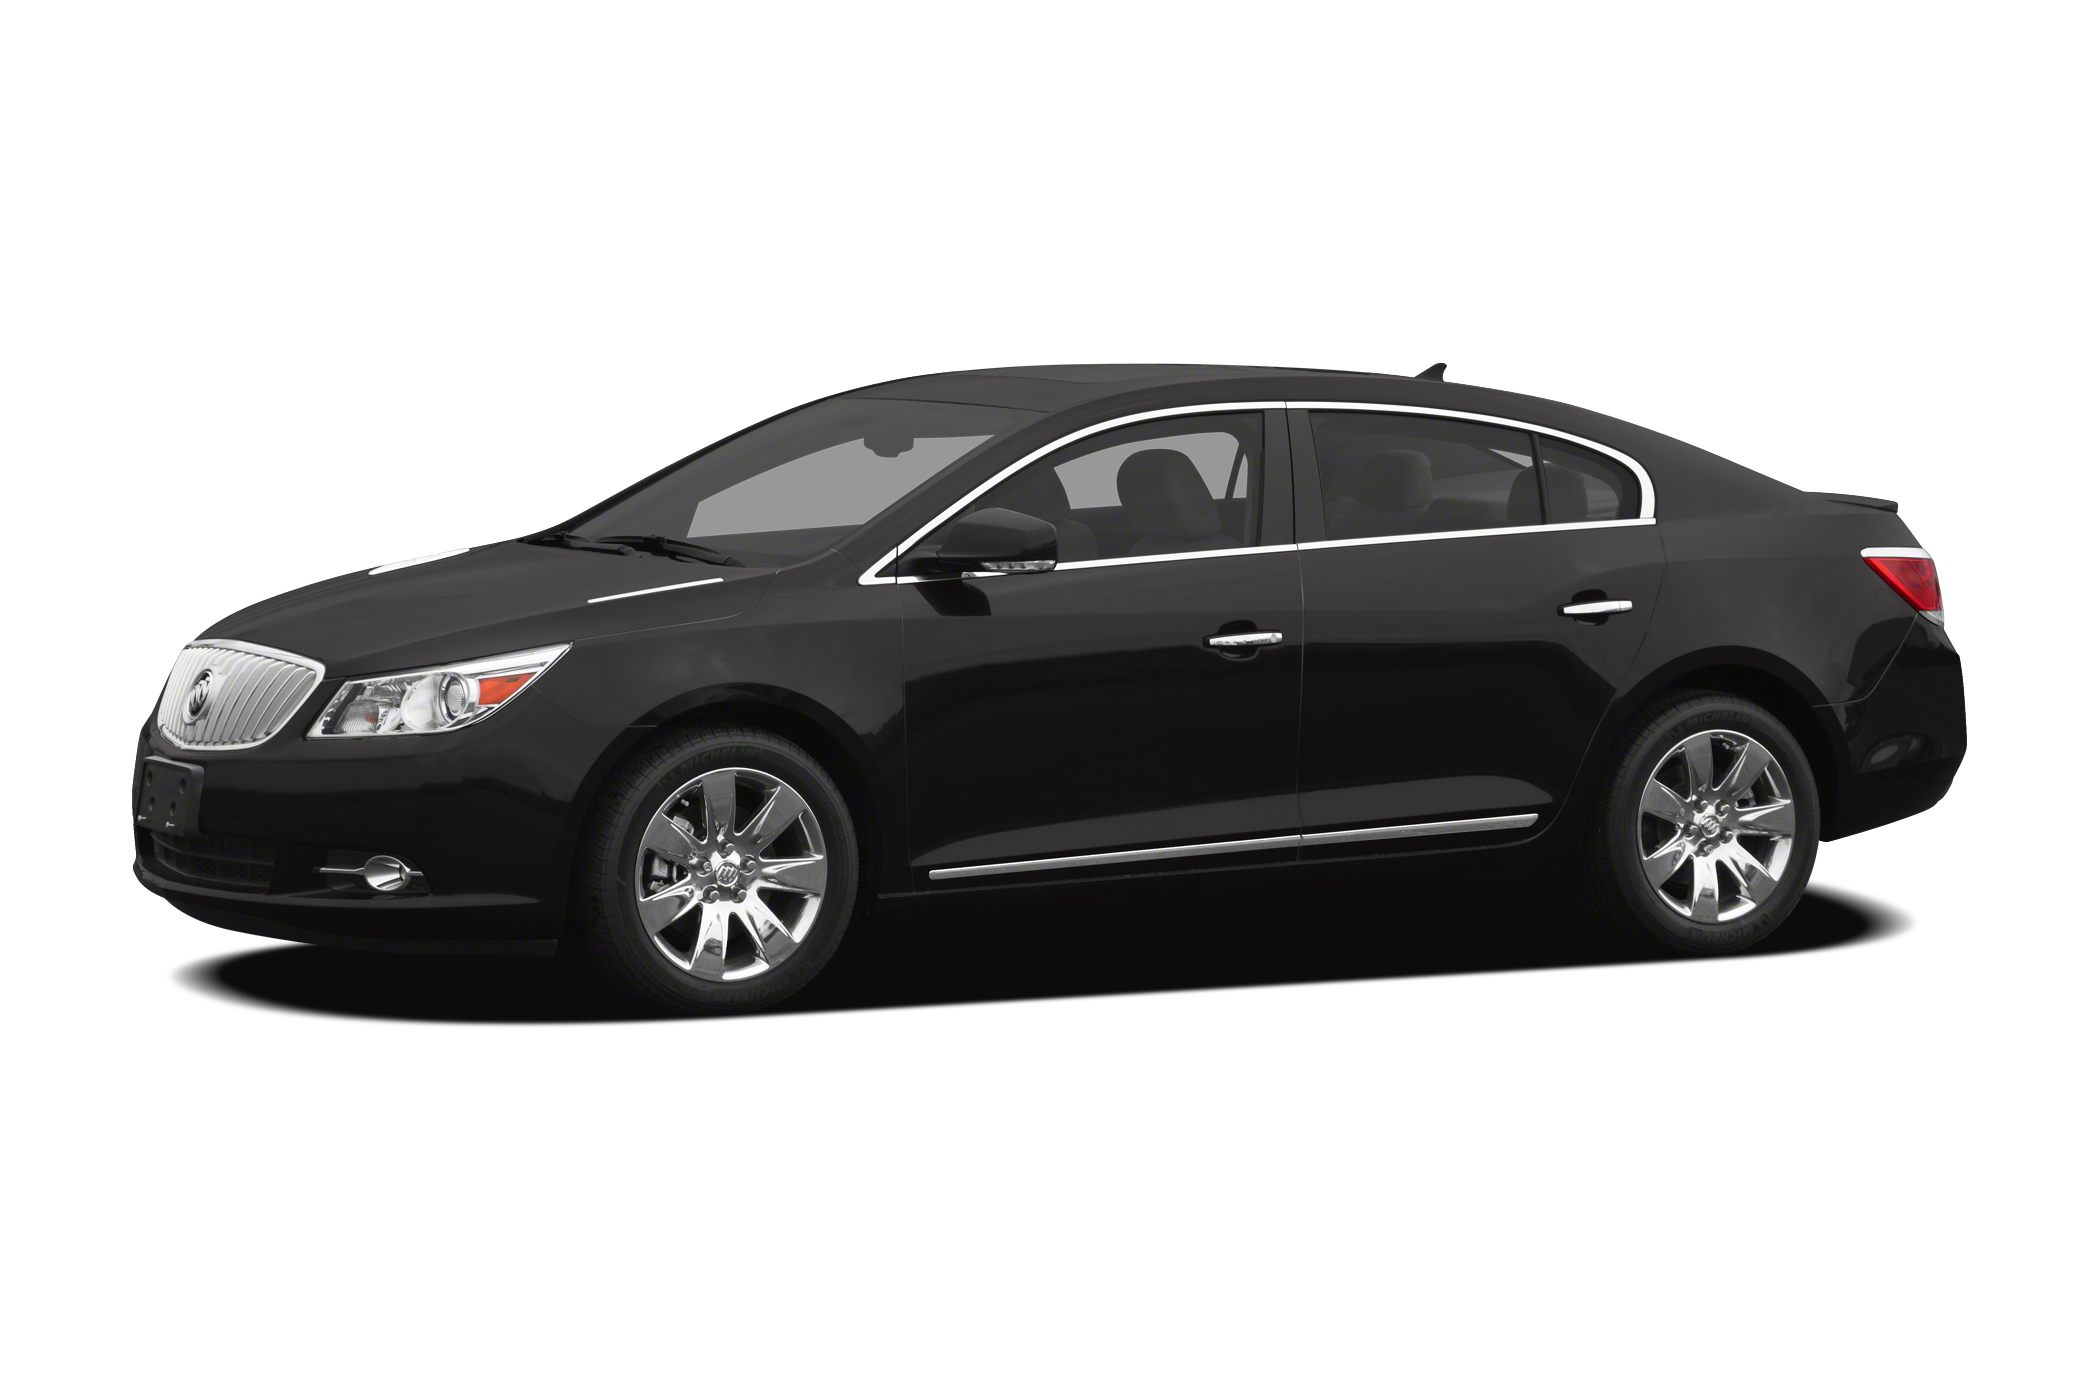 2012 Buick LaCrosse Premium 2 Sedan for sale in Cheraw for $22,988 with 55,965 miles.